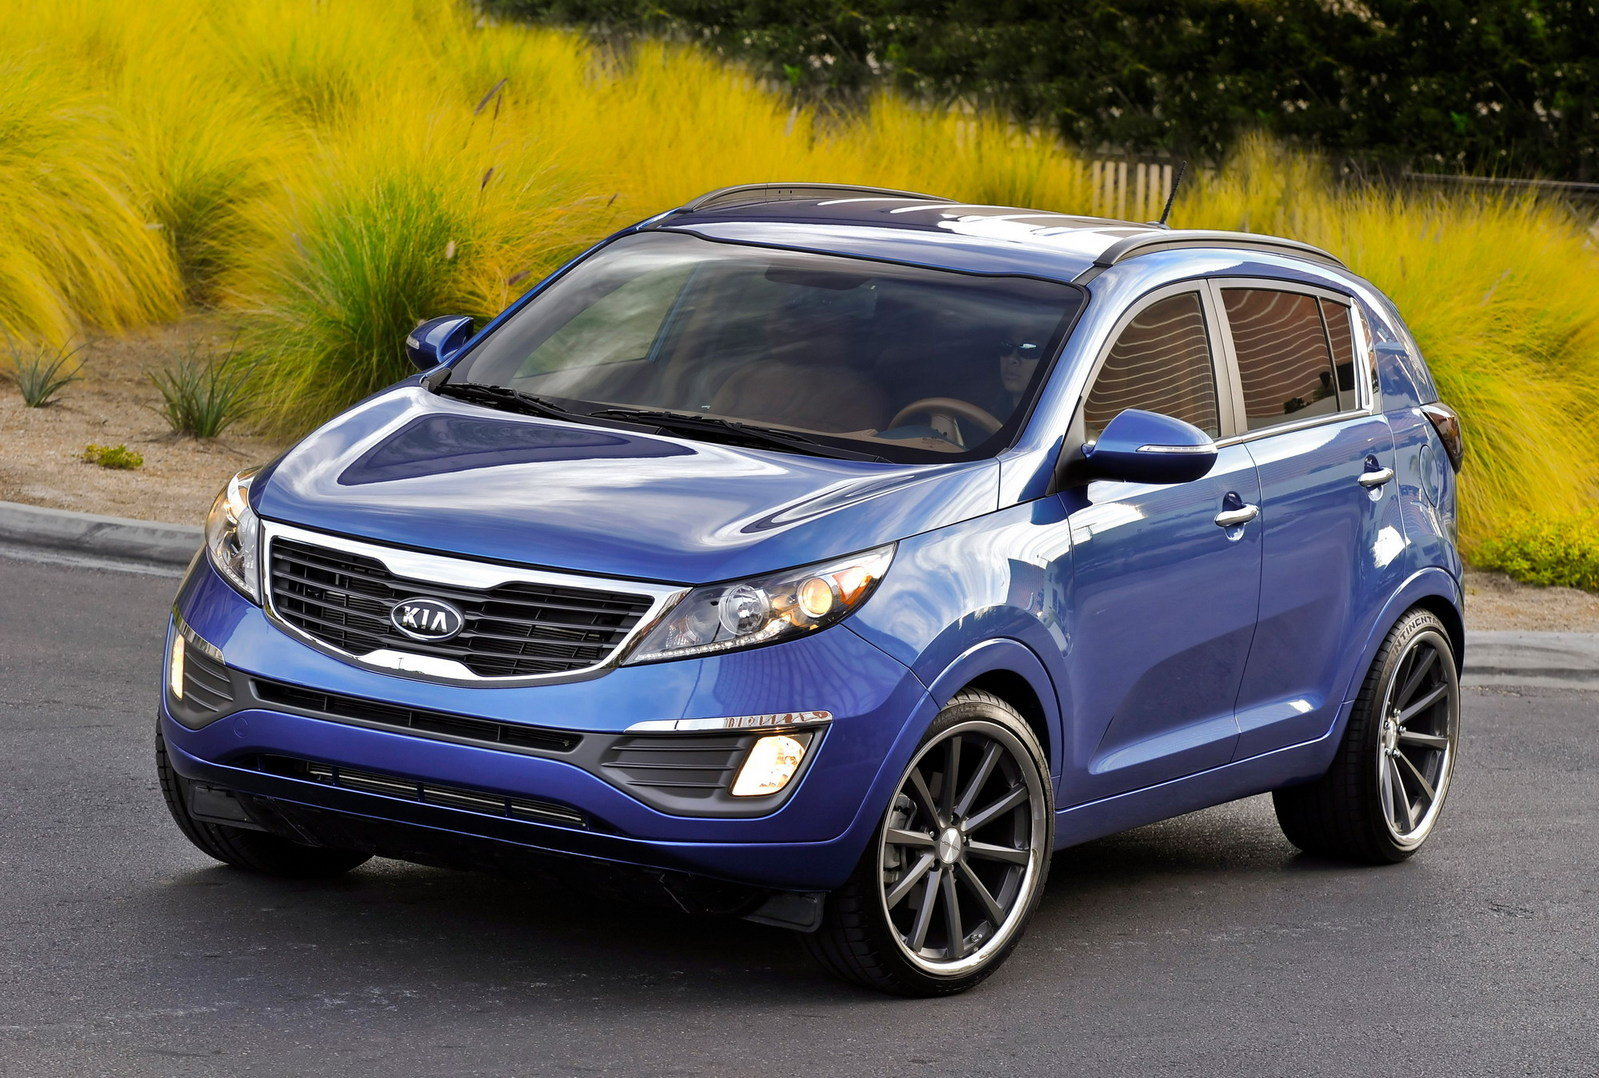 kia sportage by ante 8_1600x0w kia sportage reviews, specs & prices top speed Kia Sportage Engine Fuse at readyjetset.co